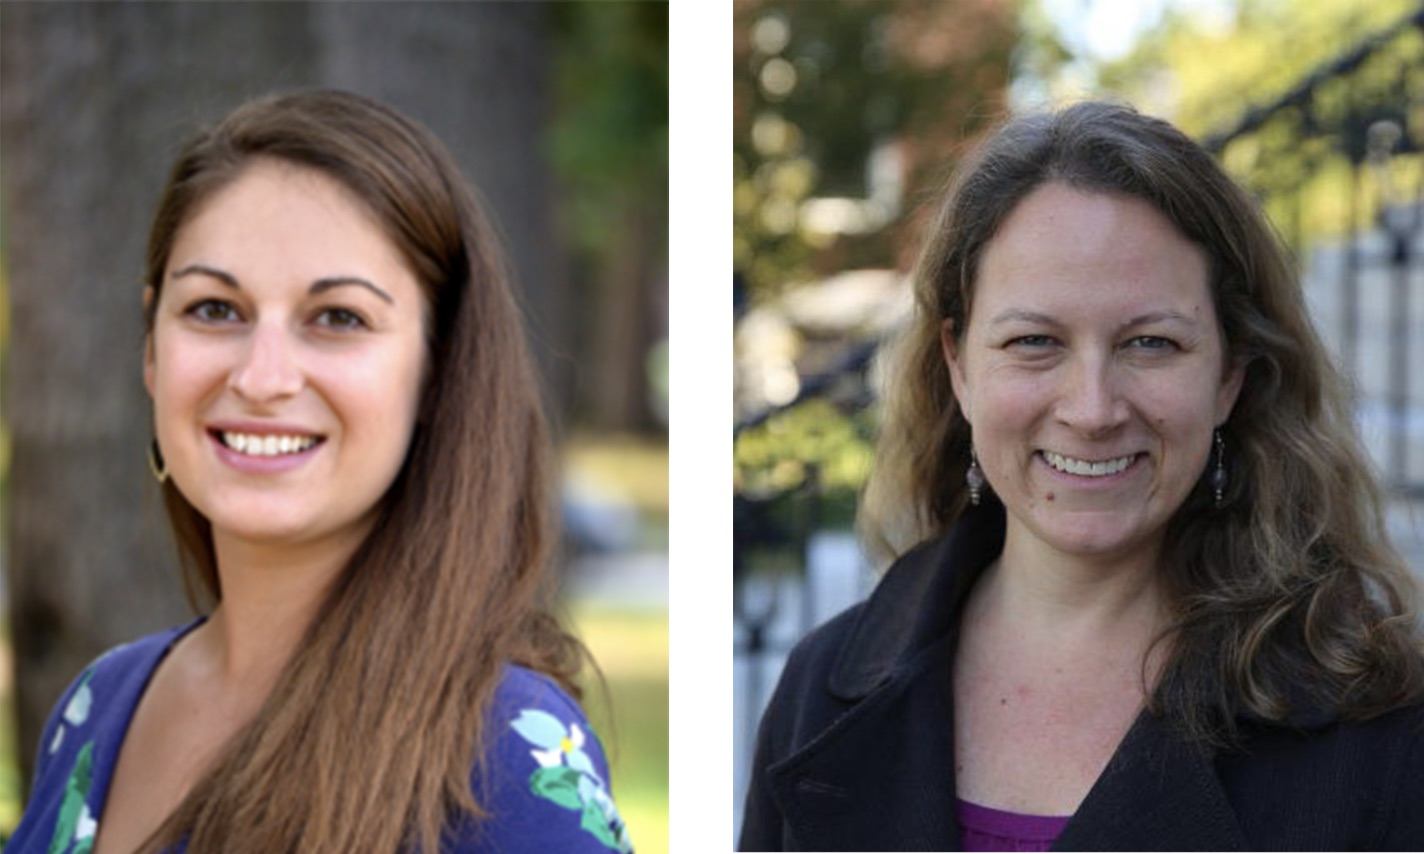 CXD's Associate Director of Skill Development and Programming Bethany Walsh and Executive Director Kristin Brennan